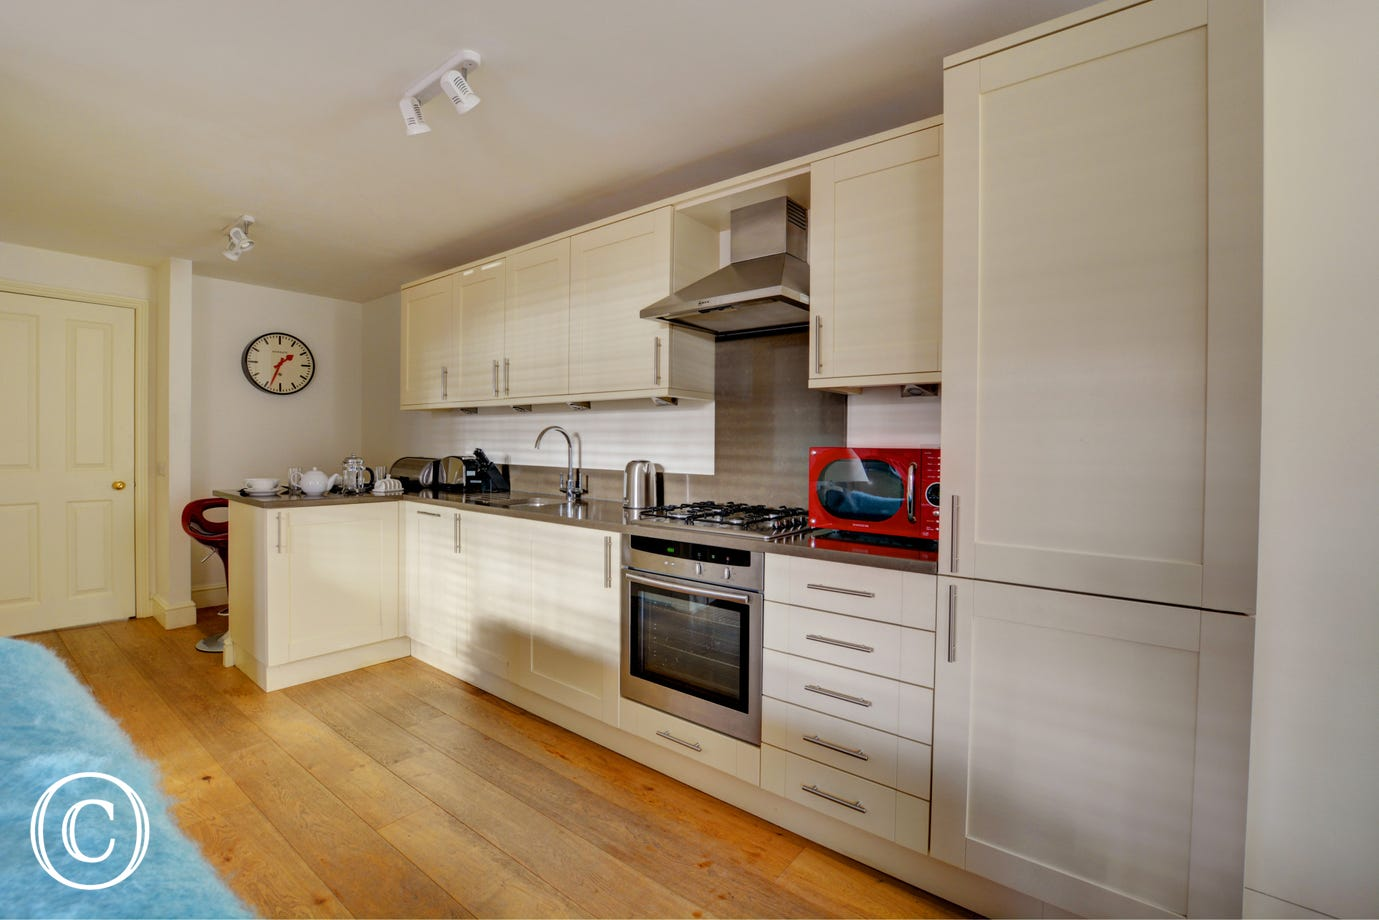 Modern kitchen area with gas hob and electric oven.